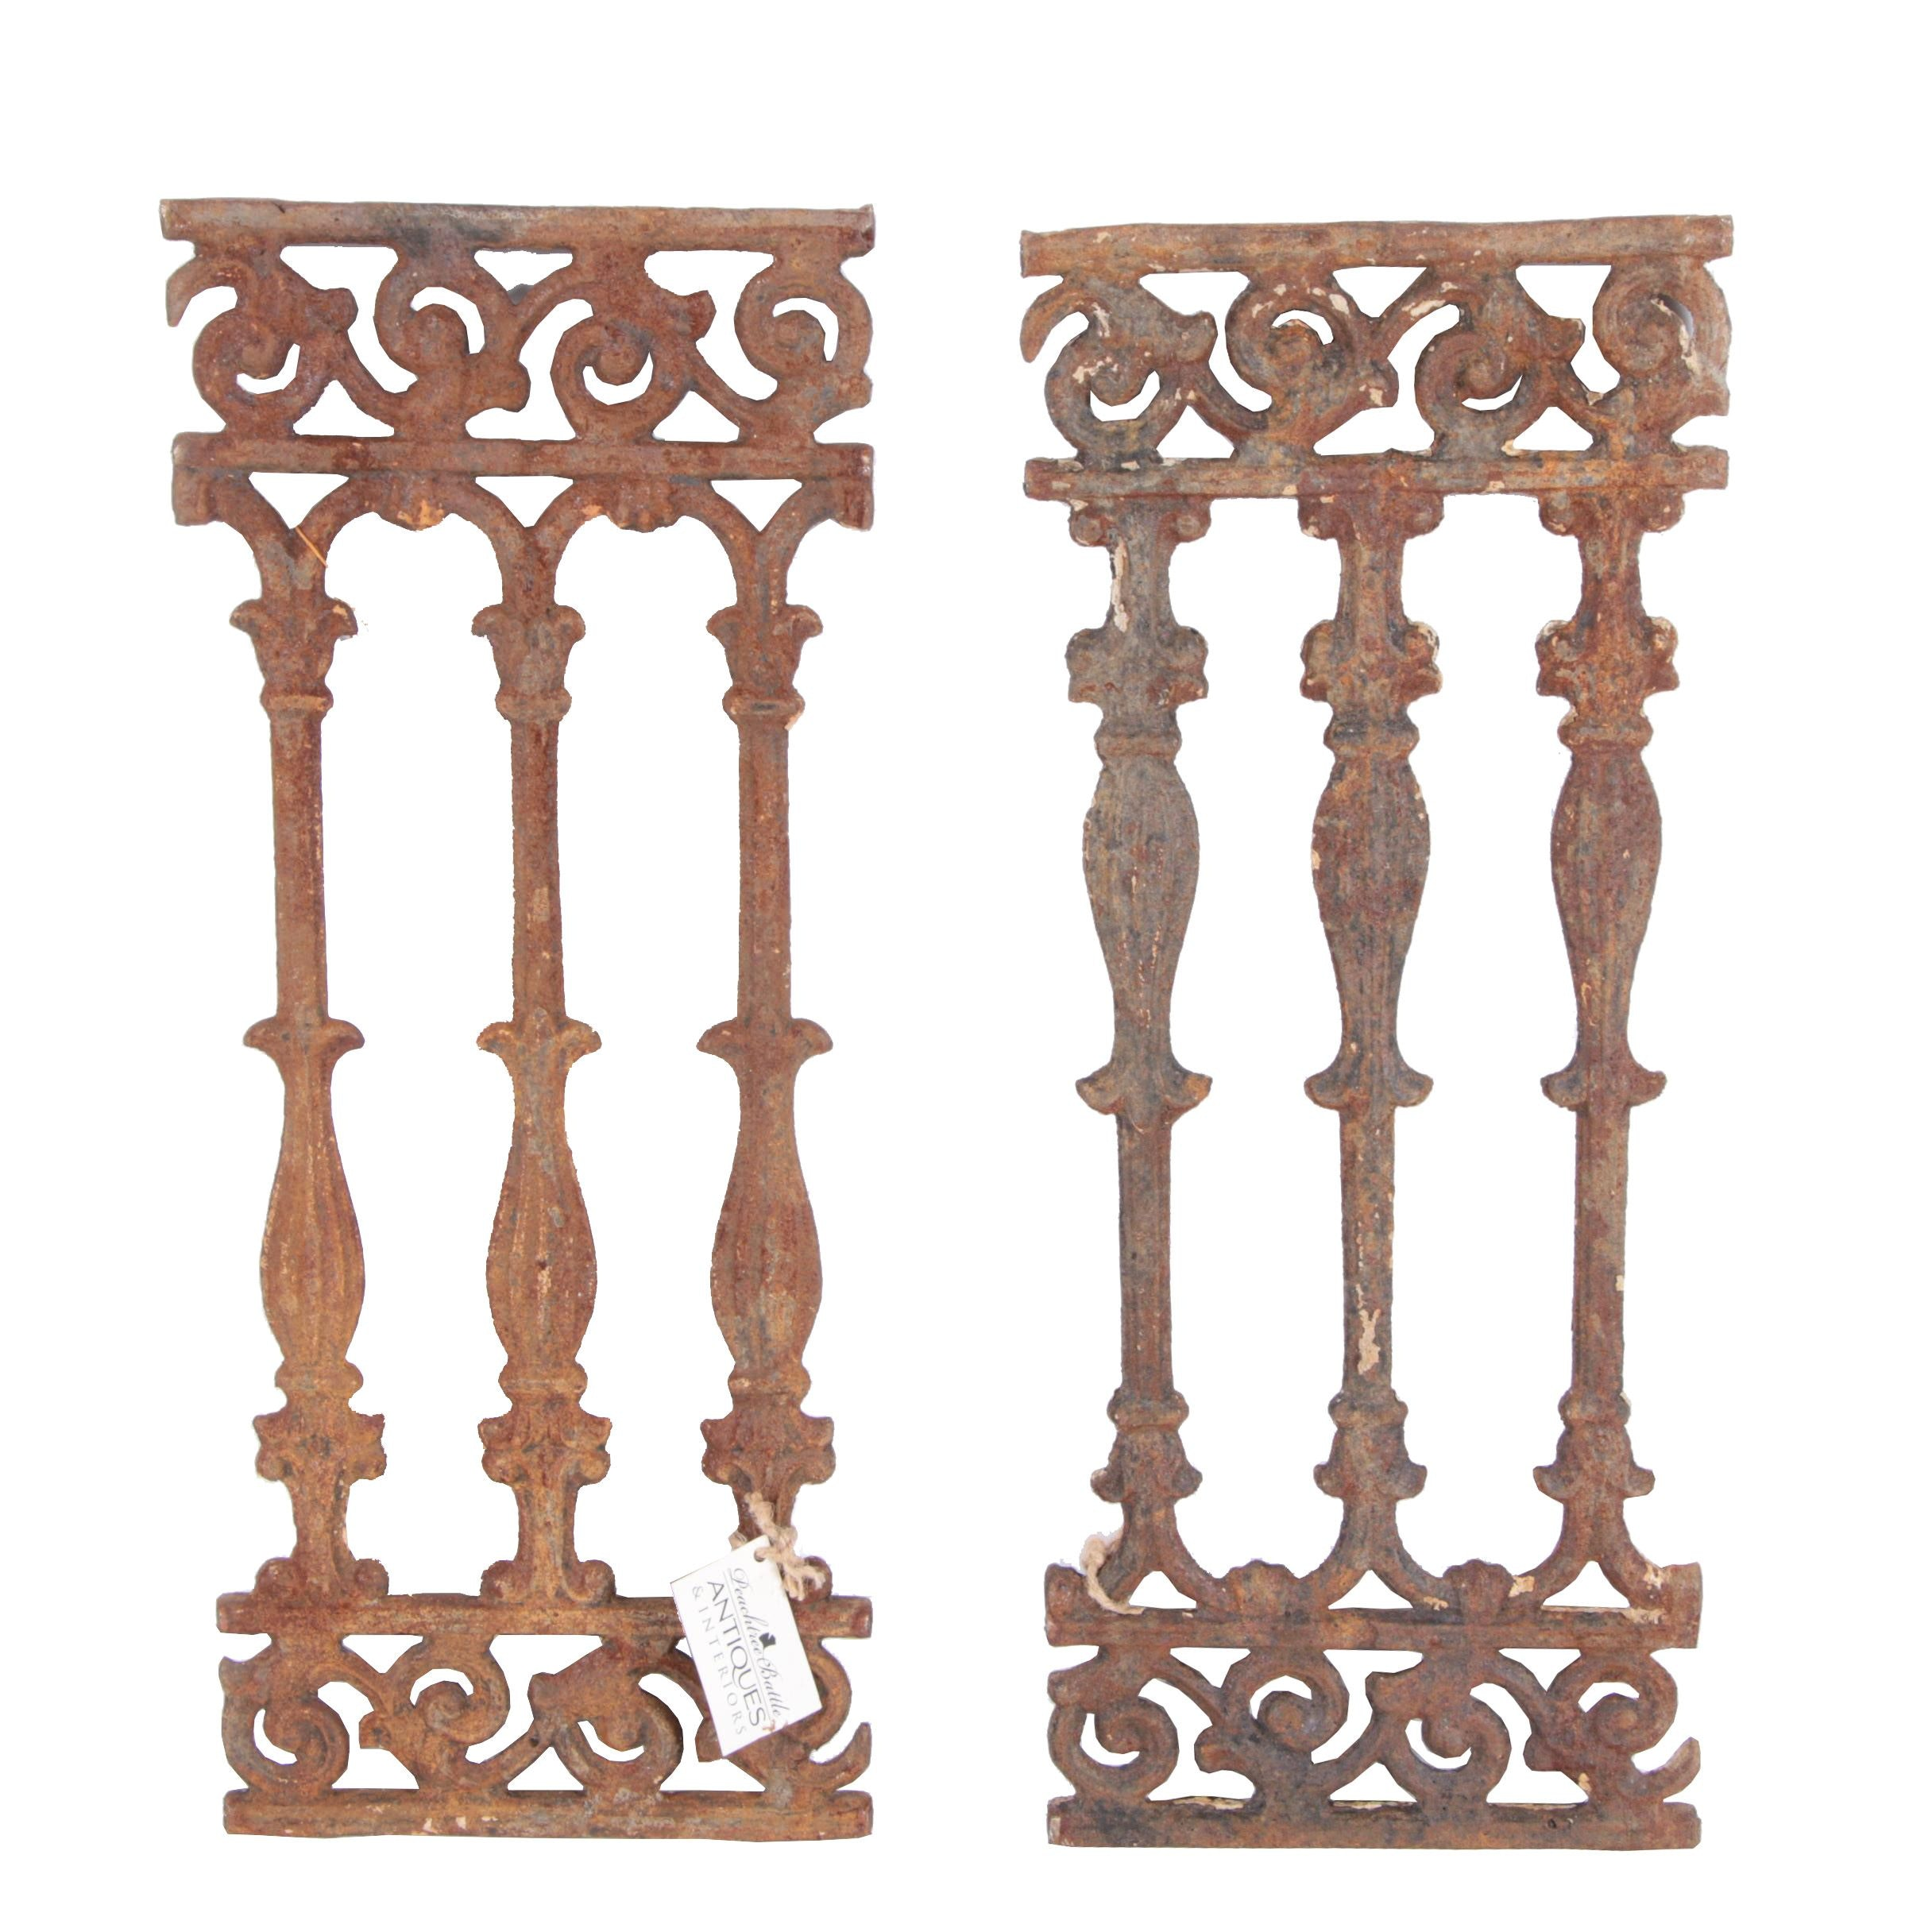 Pair of Antique Wrought Iron Decor Pieces